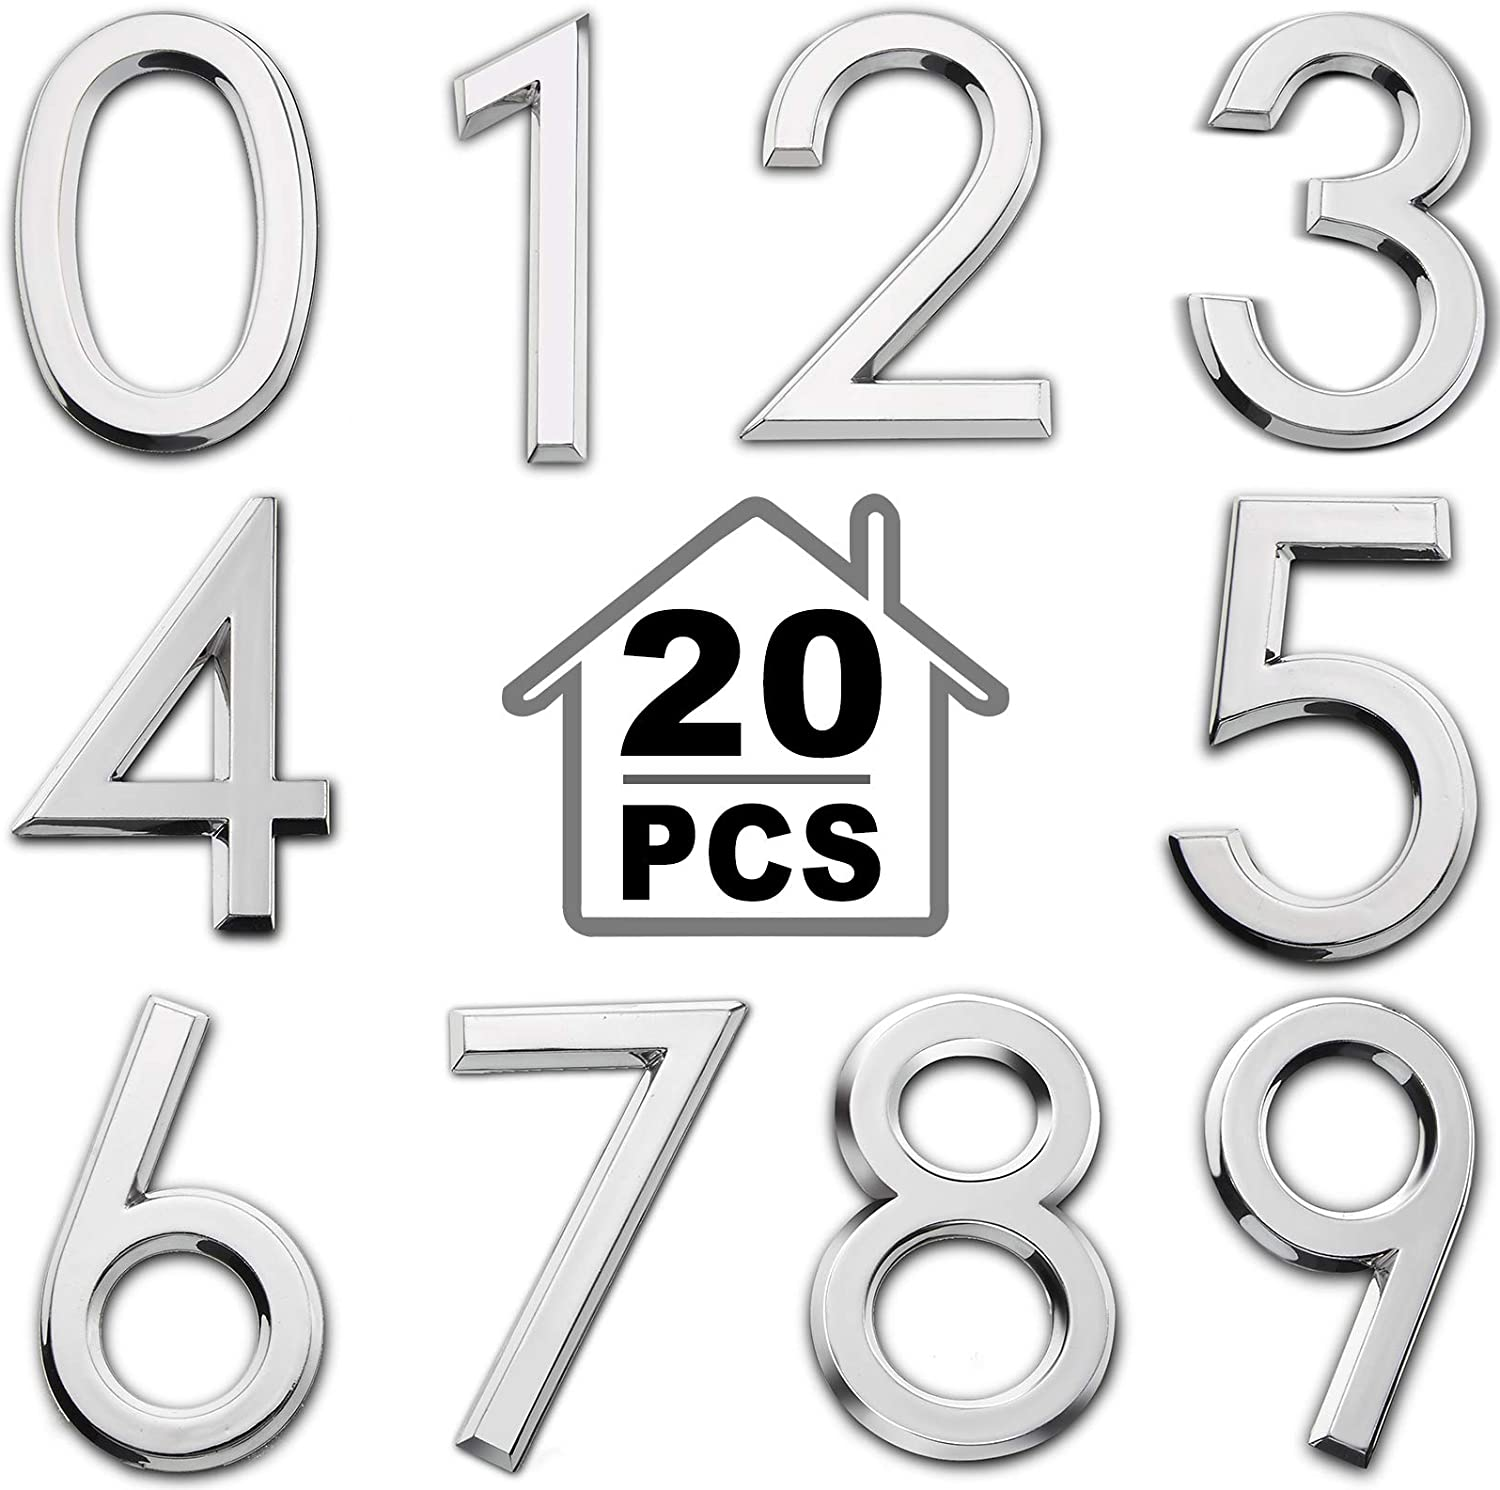 20 Pieces Mailbox Numbers Door Numbers 0-9 Self-Adhesive 2-Inch Address Number Stickers Street House Number Signs for Residence, Apartment, Office Room, Mailbox (Silver)